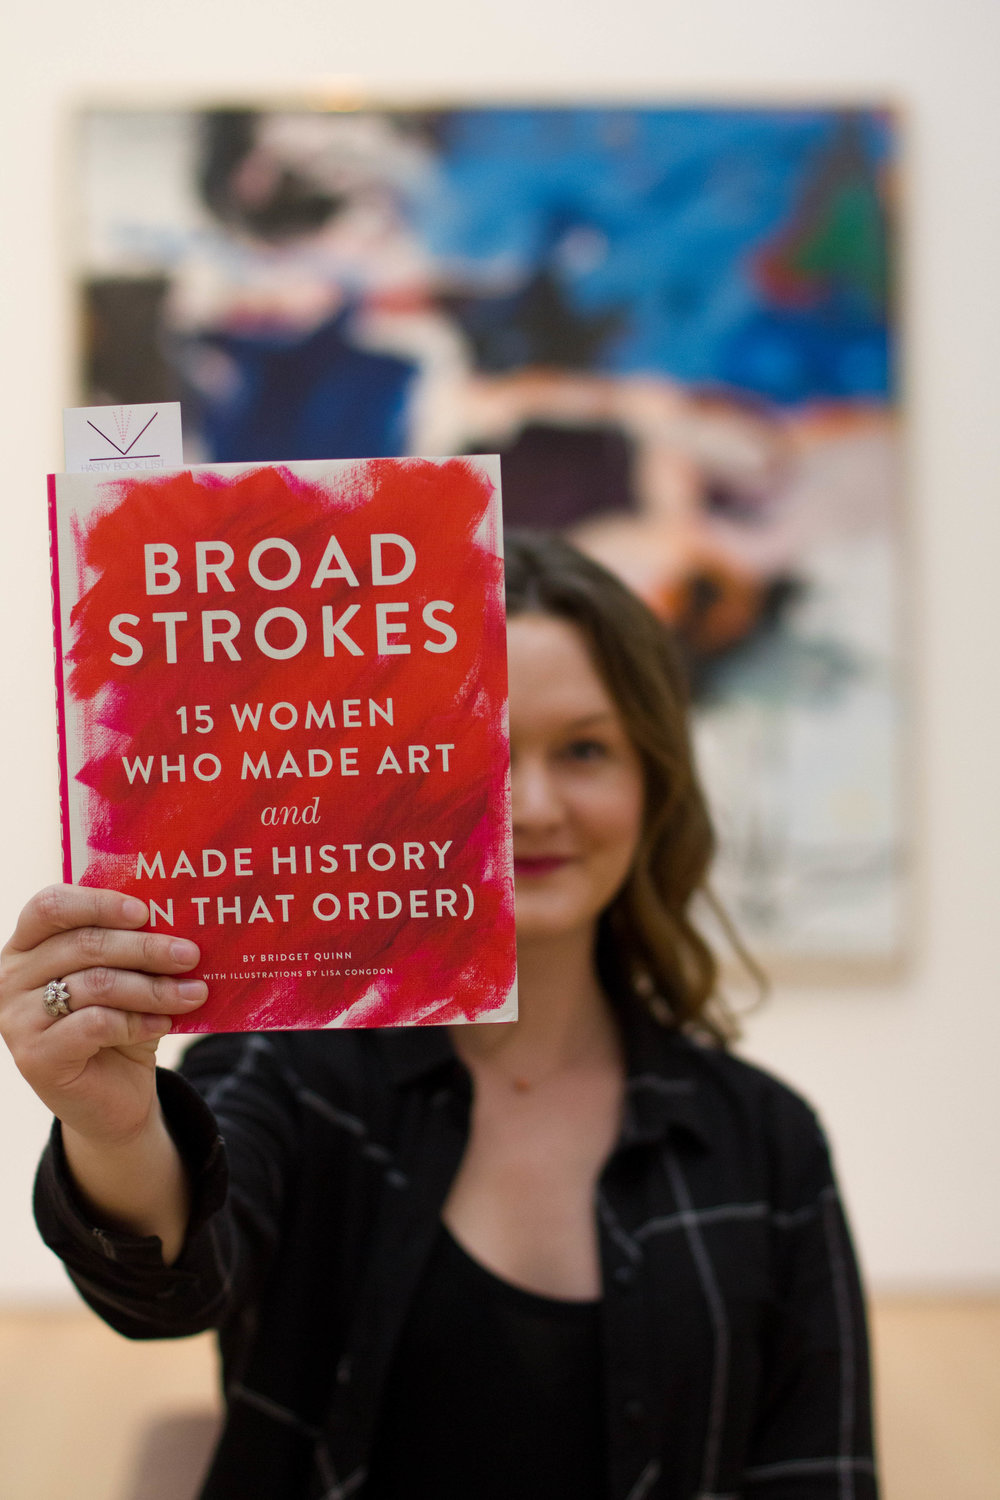 Reading Broad Strokes by Bridget Quinn at the St. Louis Art Museum